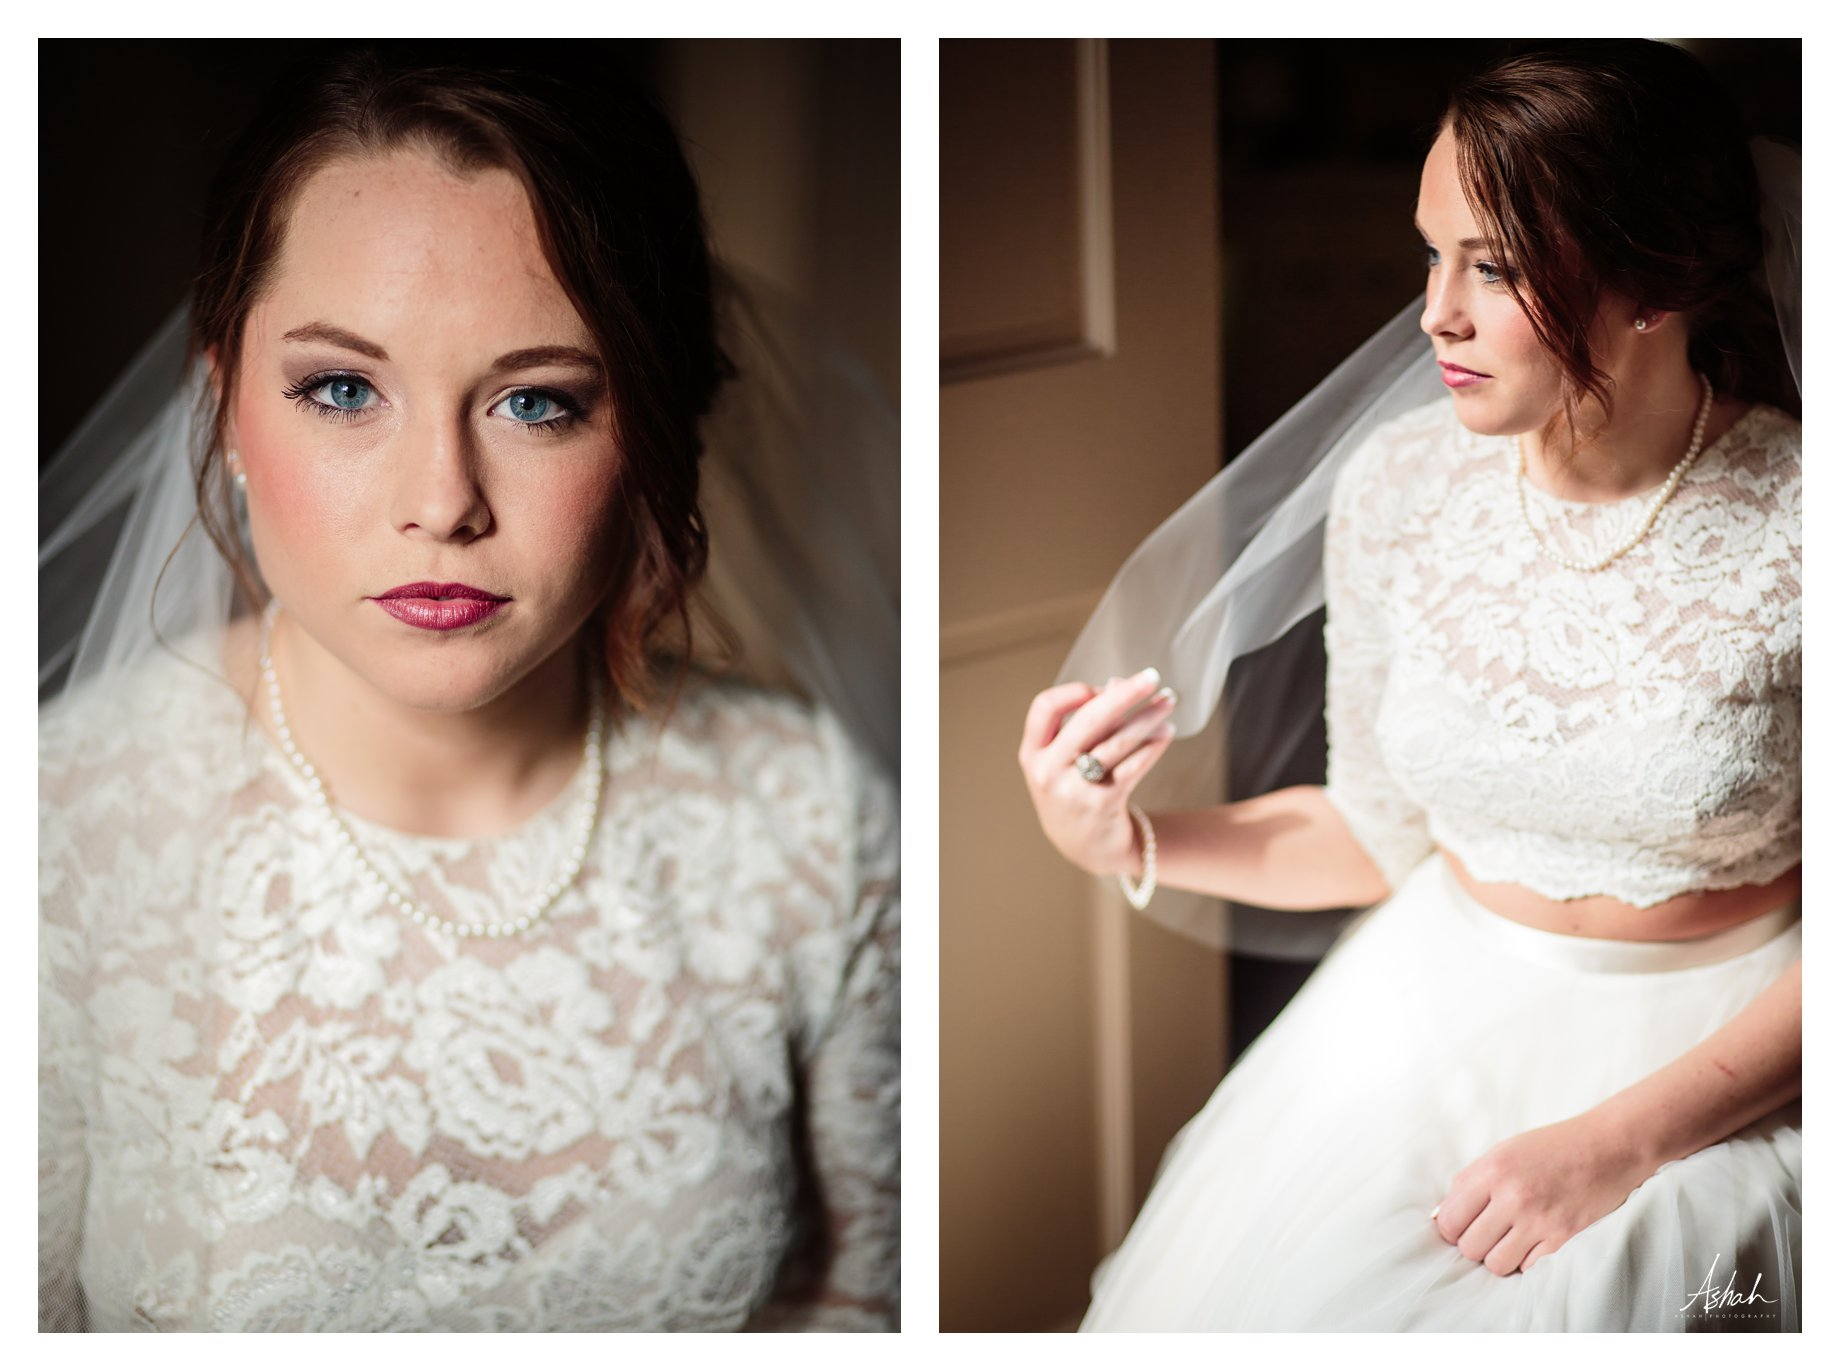 The Bride - Dublin Wedding Photography